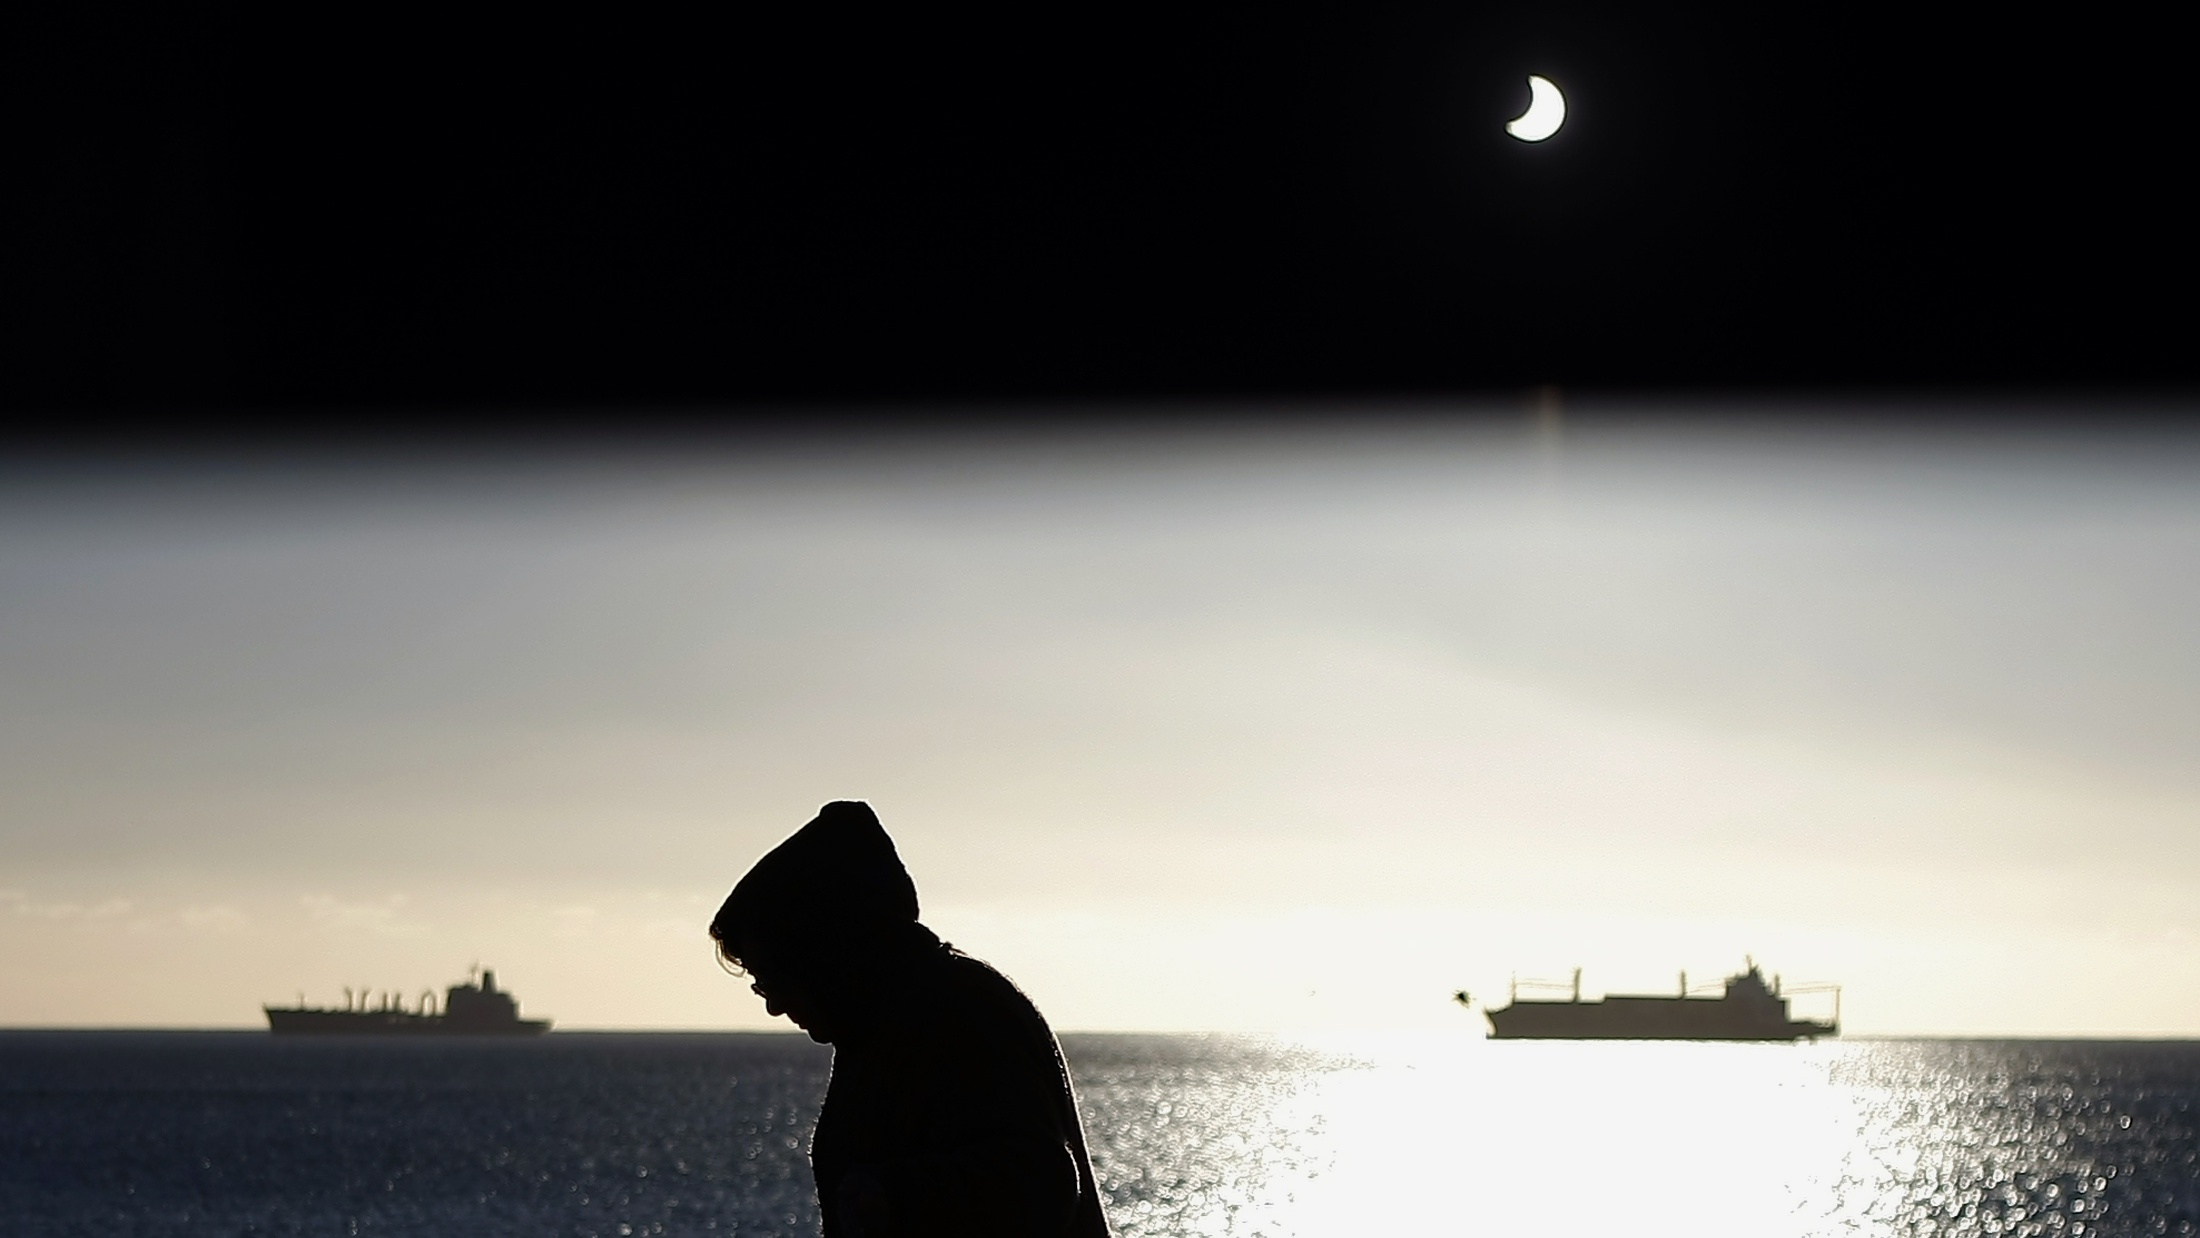 The moon passes between the sun and the earth during a solar eclipse in Valparaiso City, 75 miles (121 km) northwest of Santiago, July 11, 2010. The effect was created by shooting part of the image through a piece of exposed X-ray film. REUTERS/Eliseo Fernandez (CHILE - Tags: SCI TECH ENVIRONMENT IMAGES OF THE DAY)